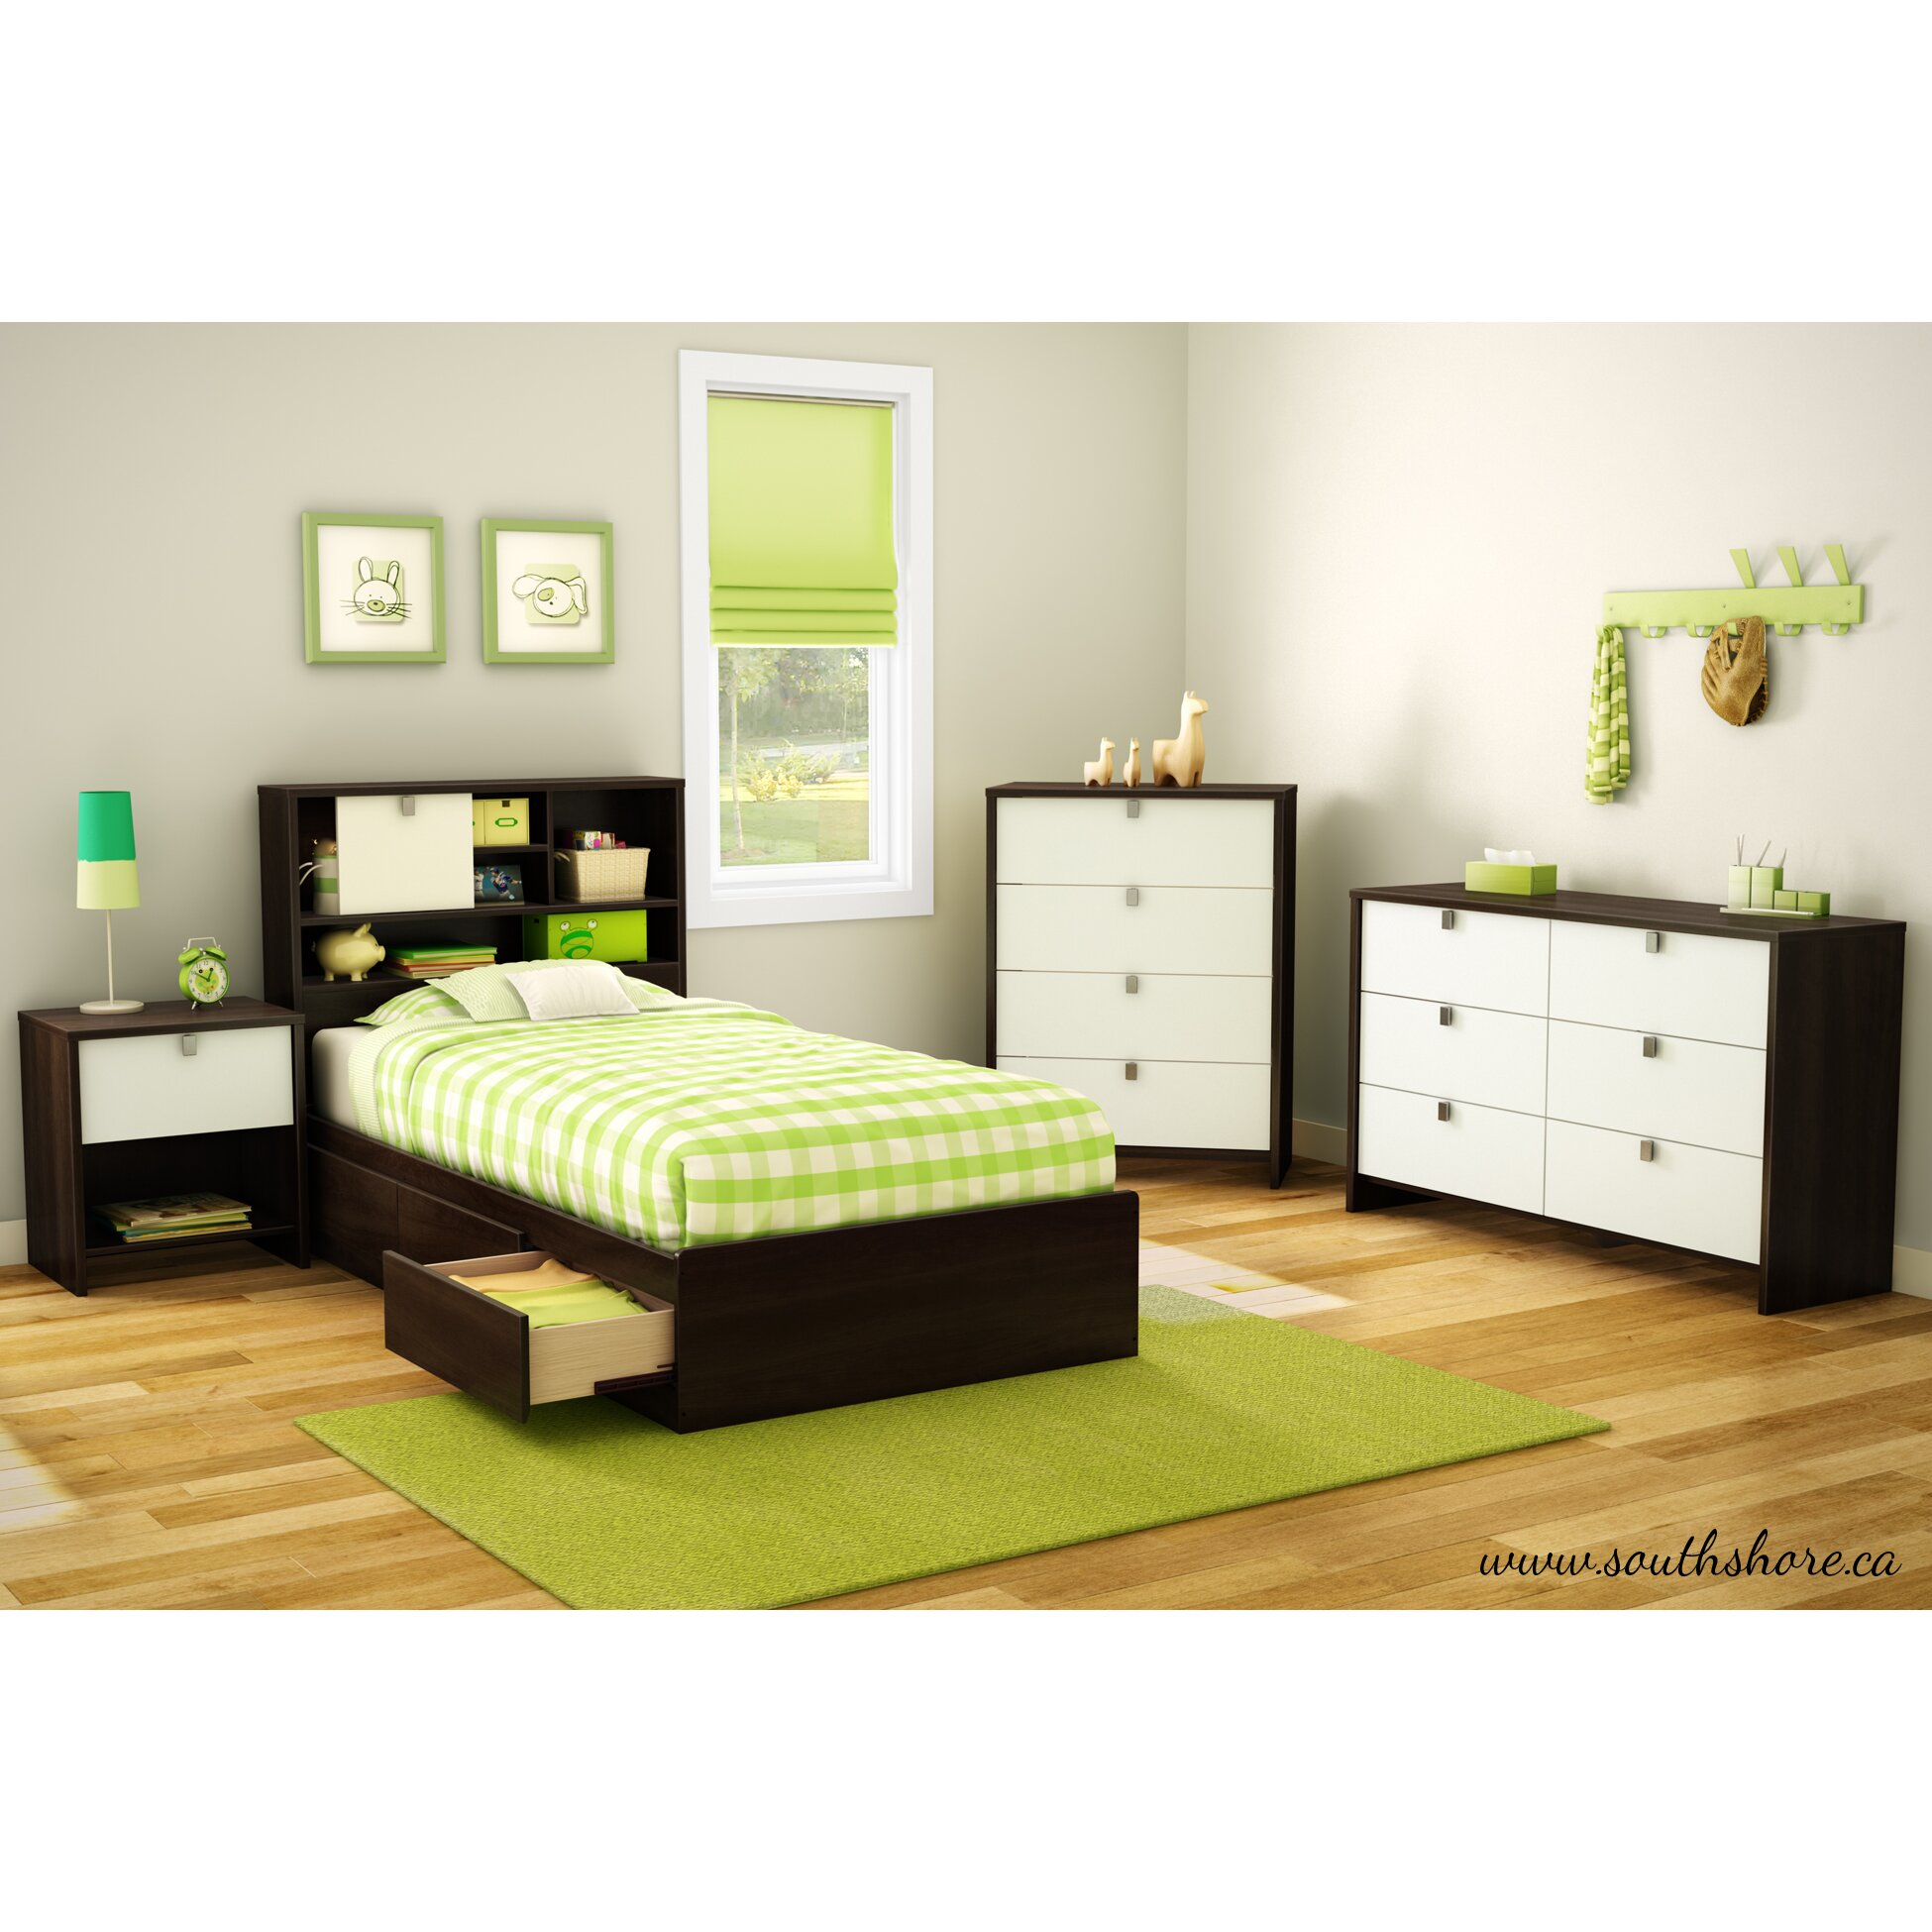 south shore cookie twin platform customizable bedroom set 17385 |